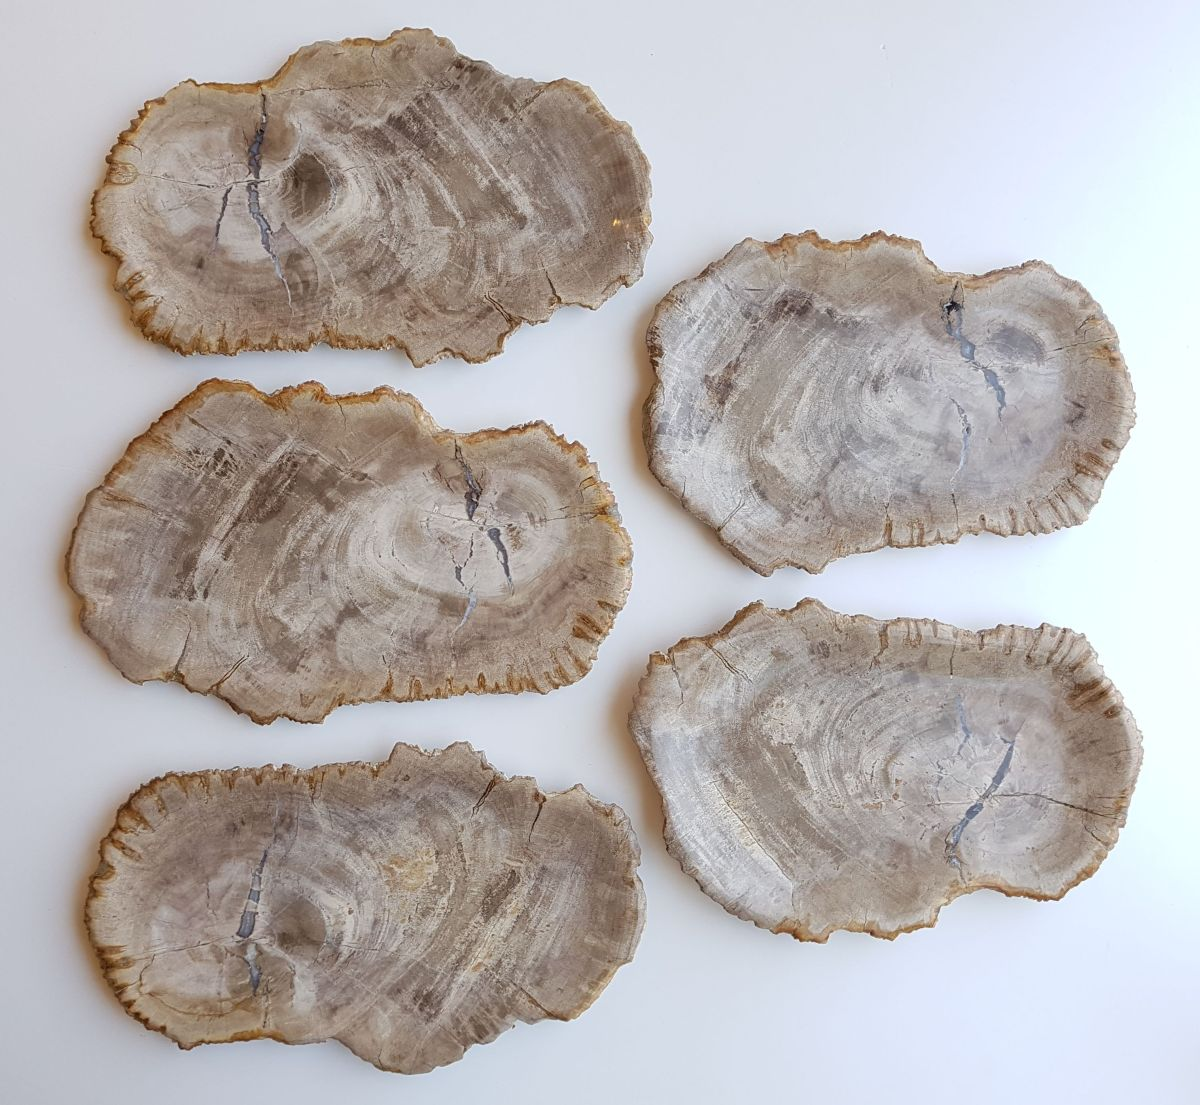 Plate petrified wood 33023b